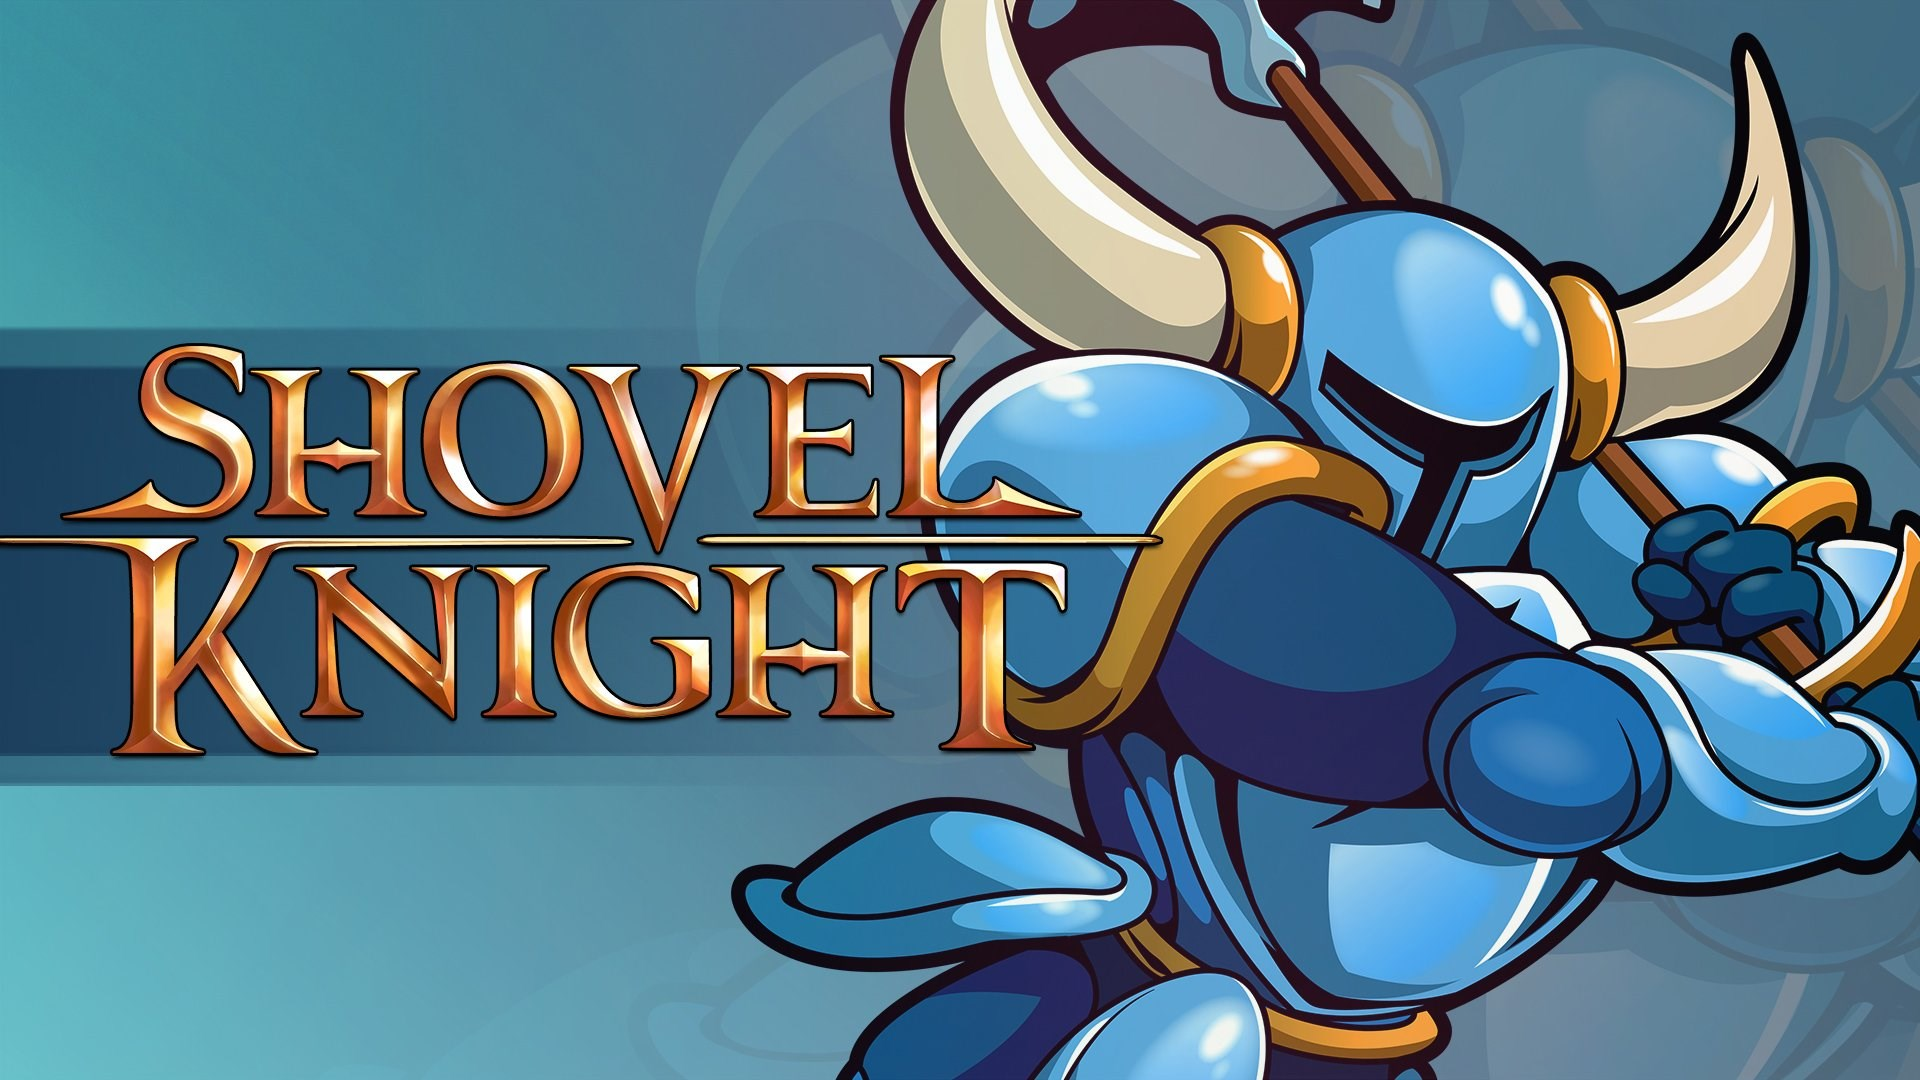 1920x1080-pictures-of-shovel-knight-wallpaper-wpc580926